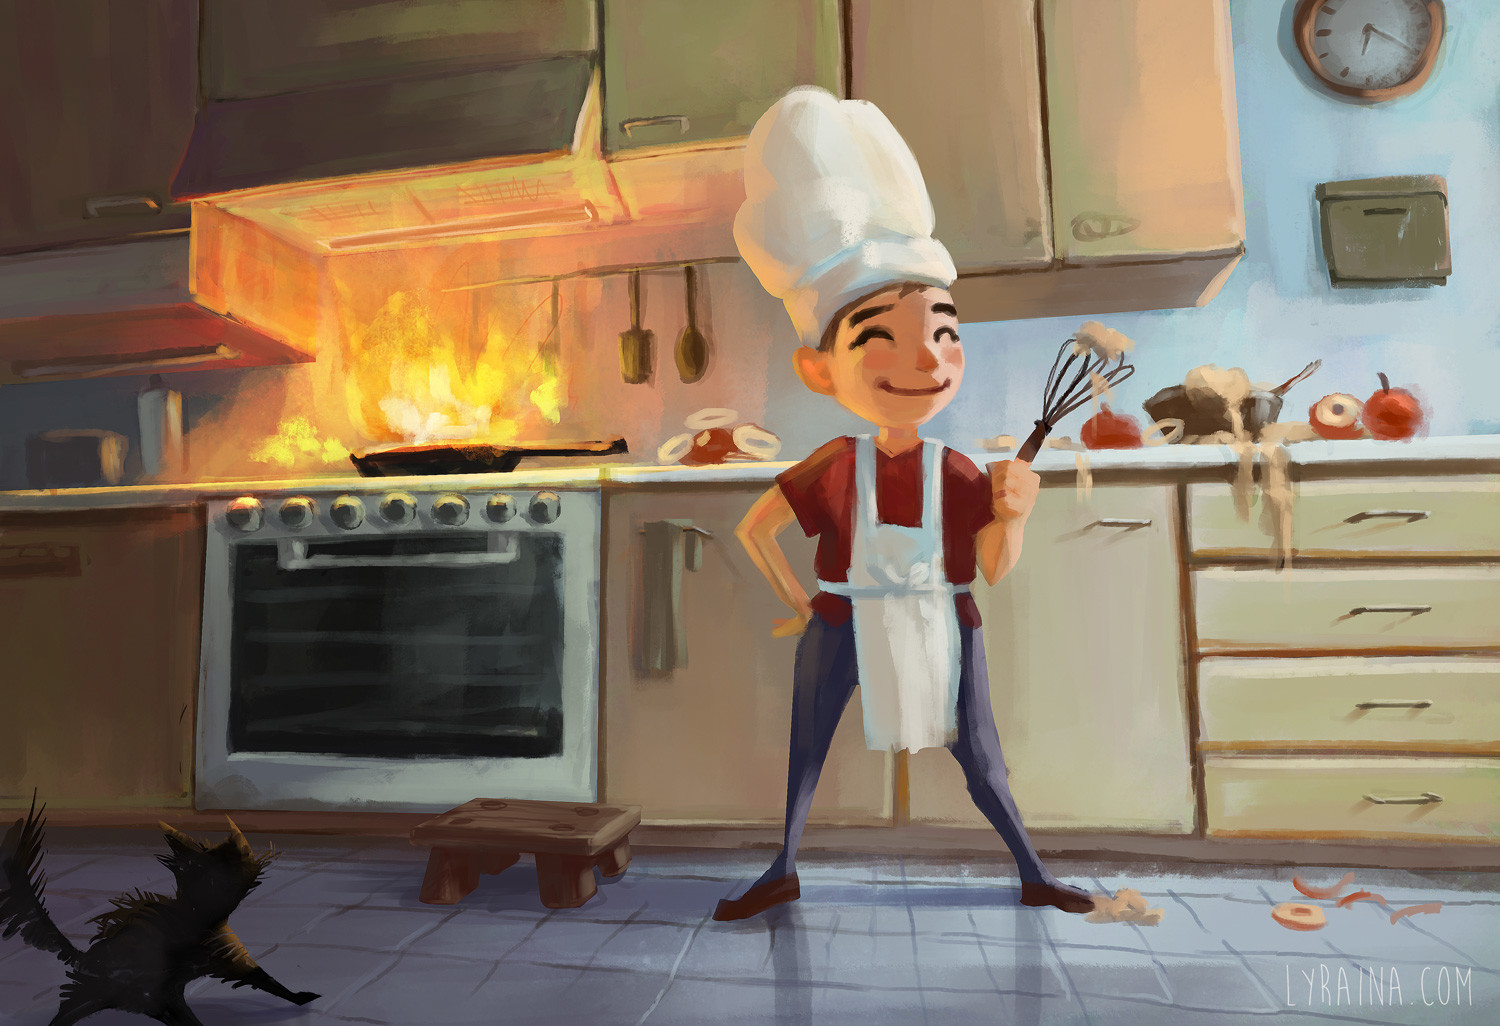 Little Chef (true story!)